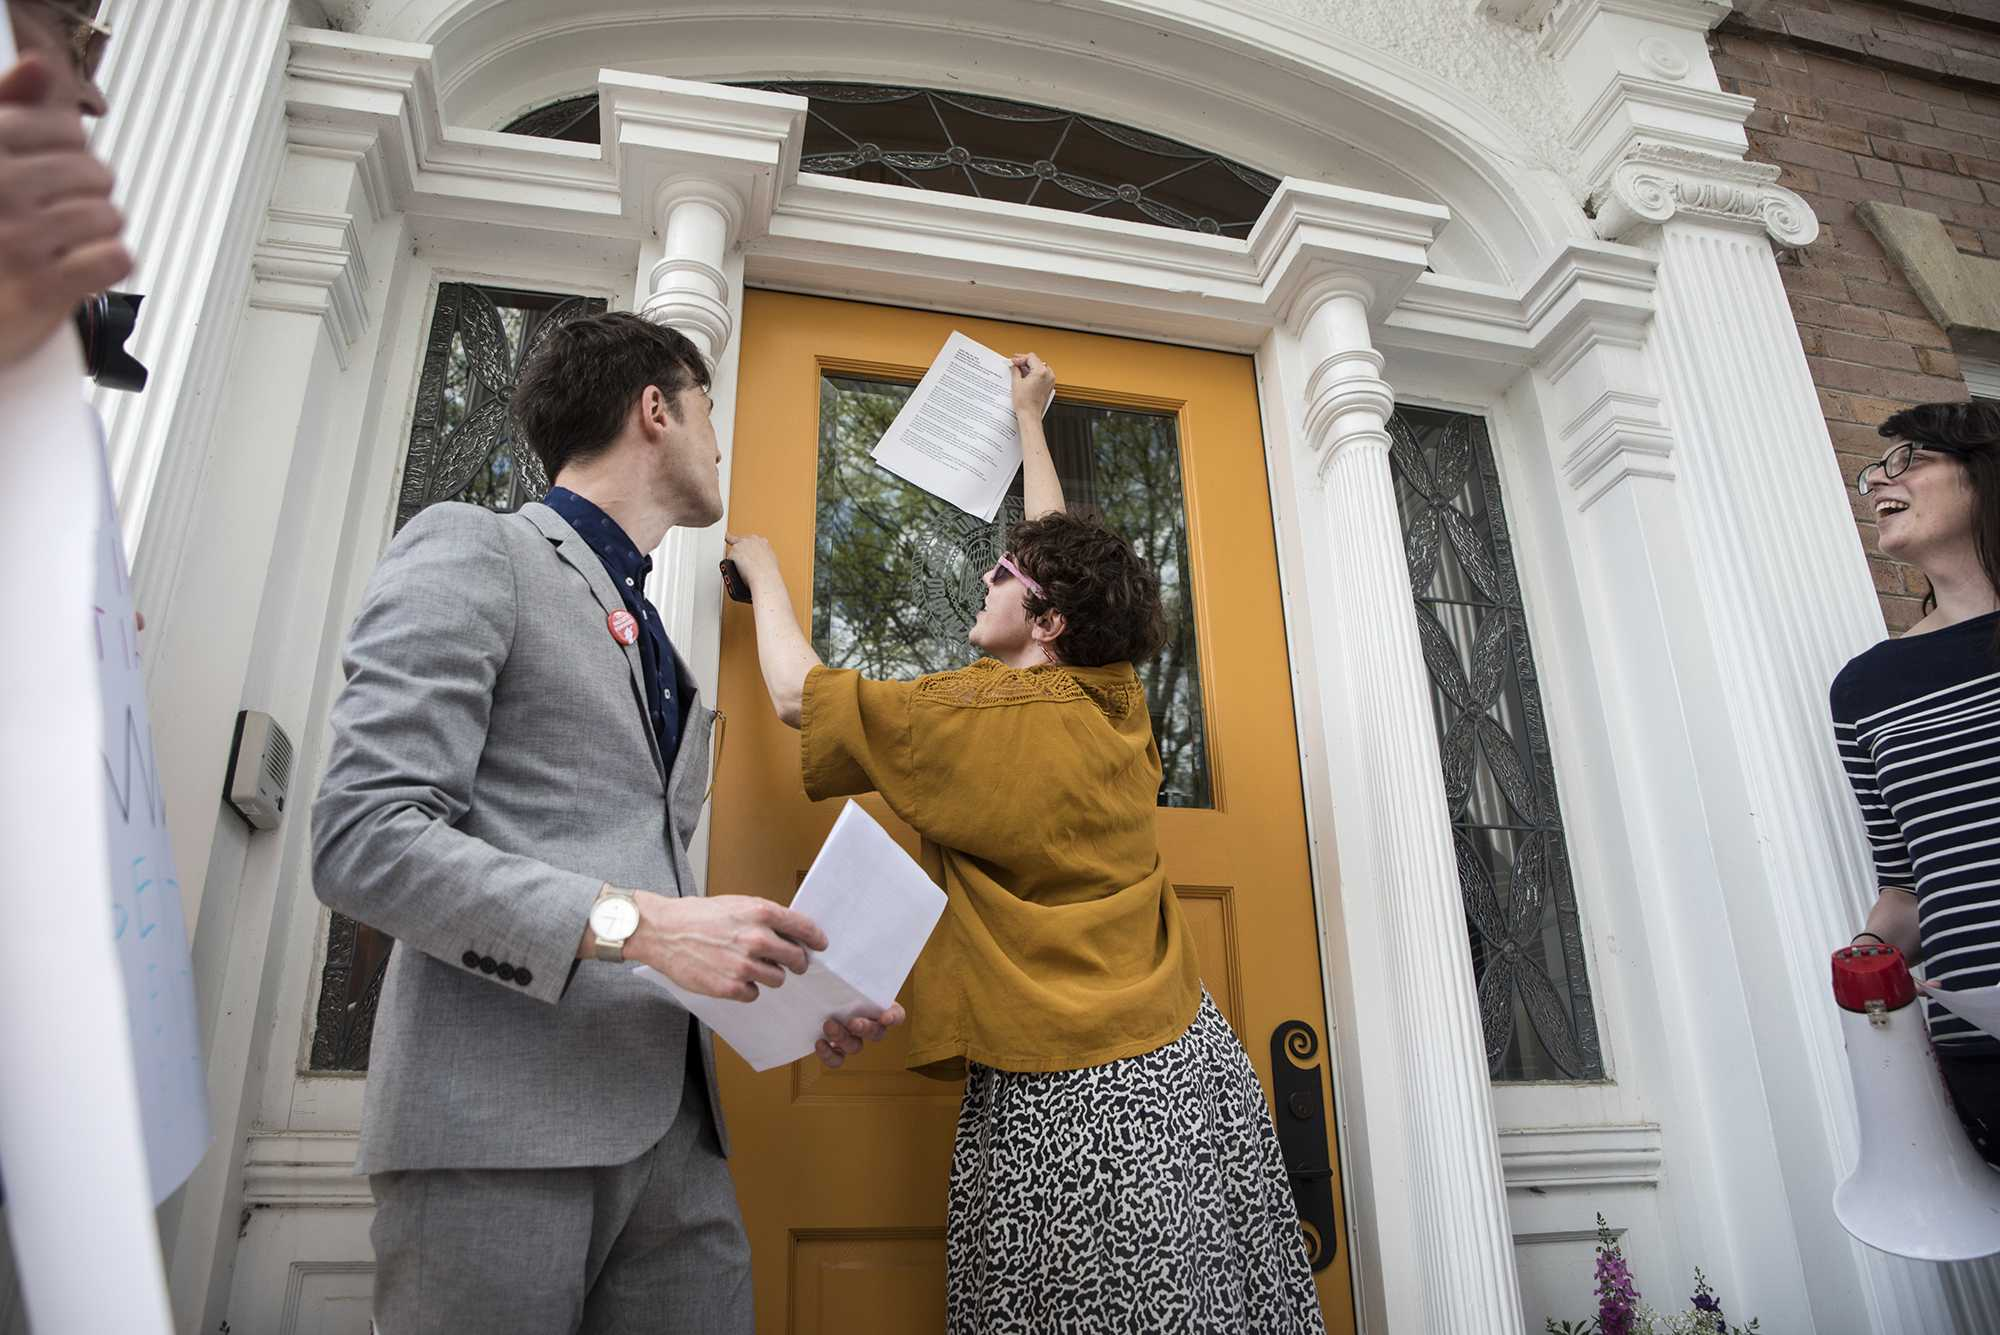 Meaghan Harding tapes a letter to the door of Bruce Harreld's home on May 4, 2018. UI's non-tenured faculty—grown to 52% since 2011—advocated for greater job security, fair pay, and benefits. (The Daily Iowan/Olivia Sun)